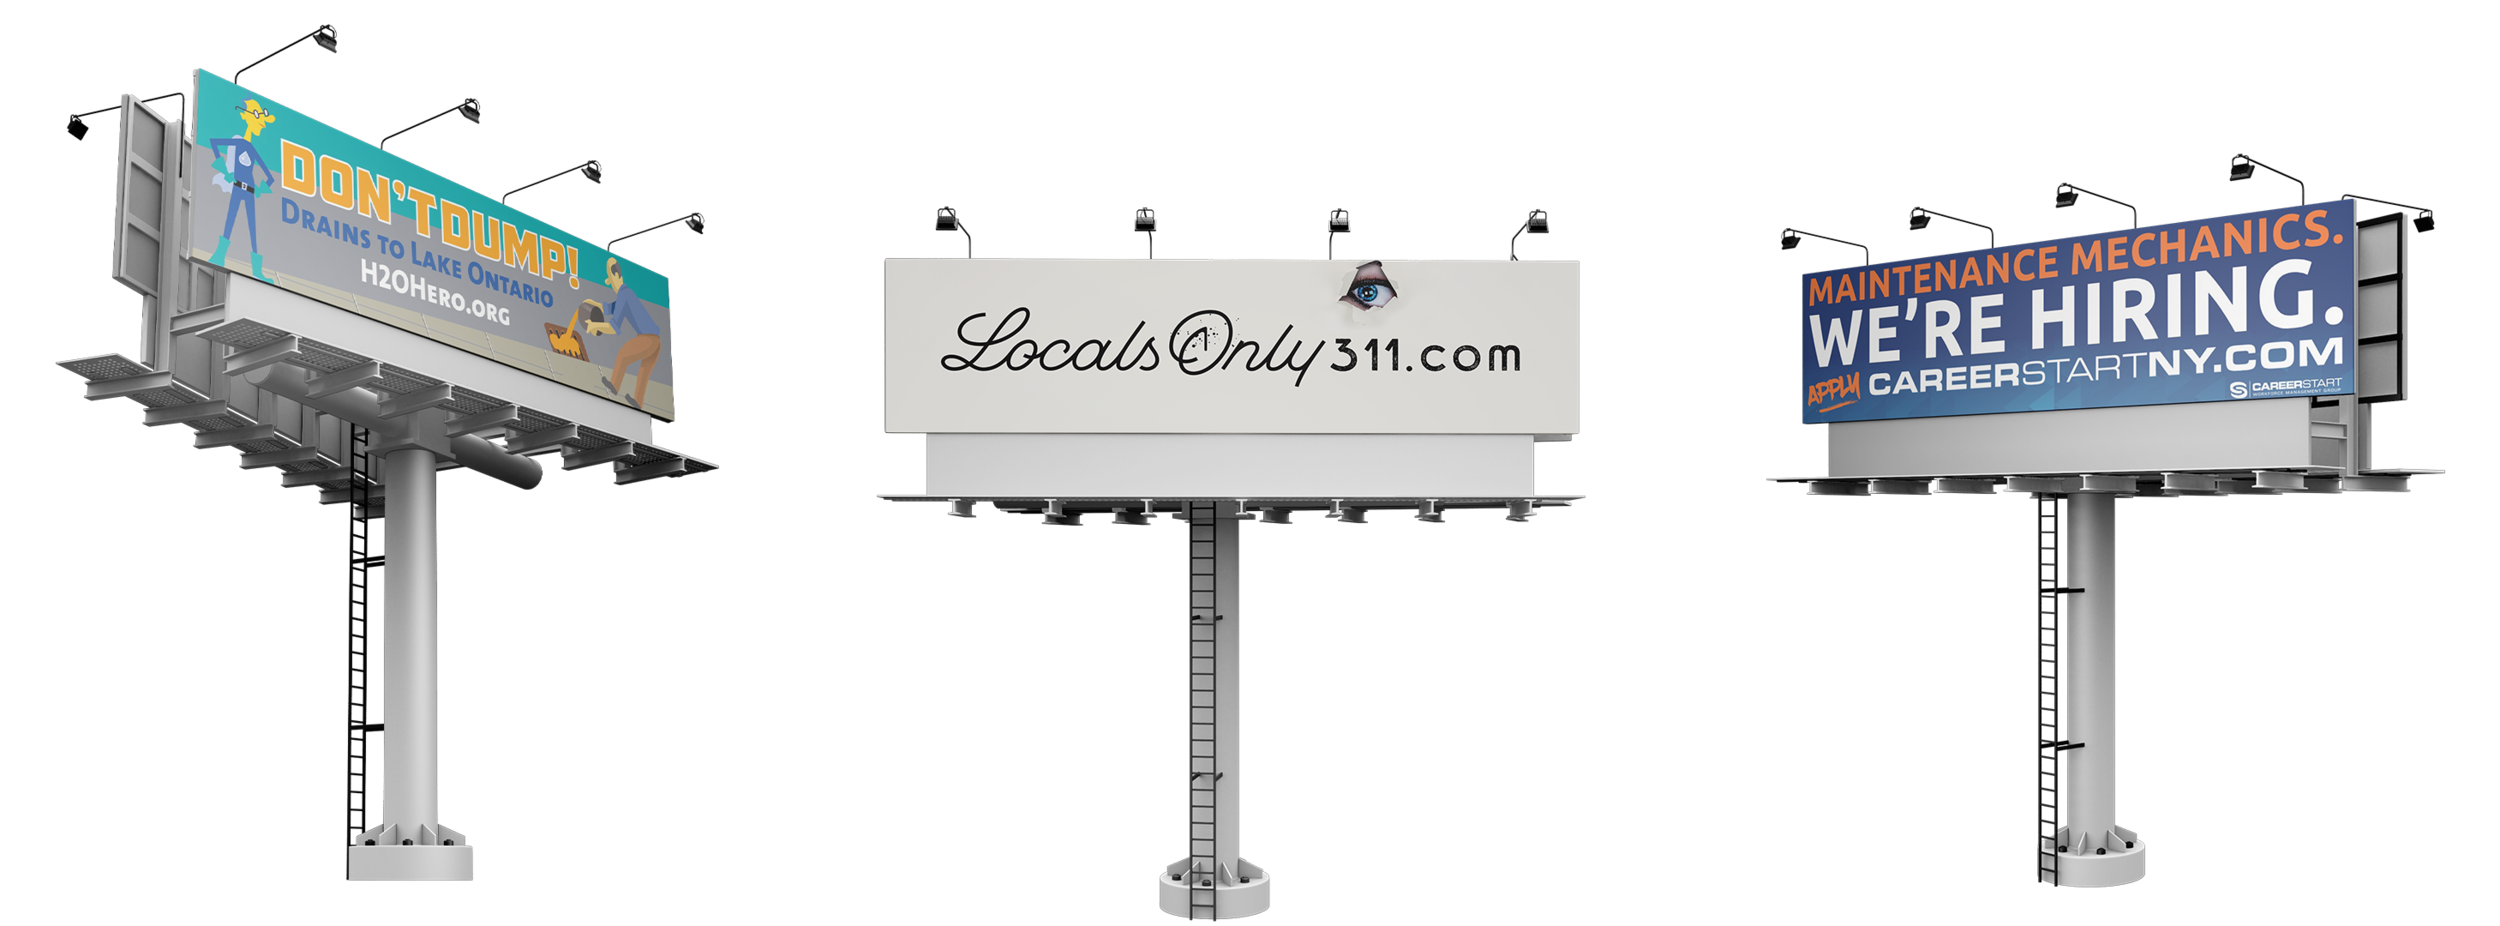 brandmint-marketing-billboard-rochester-ny.png